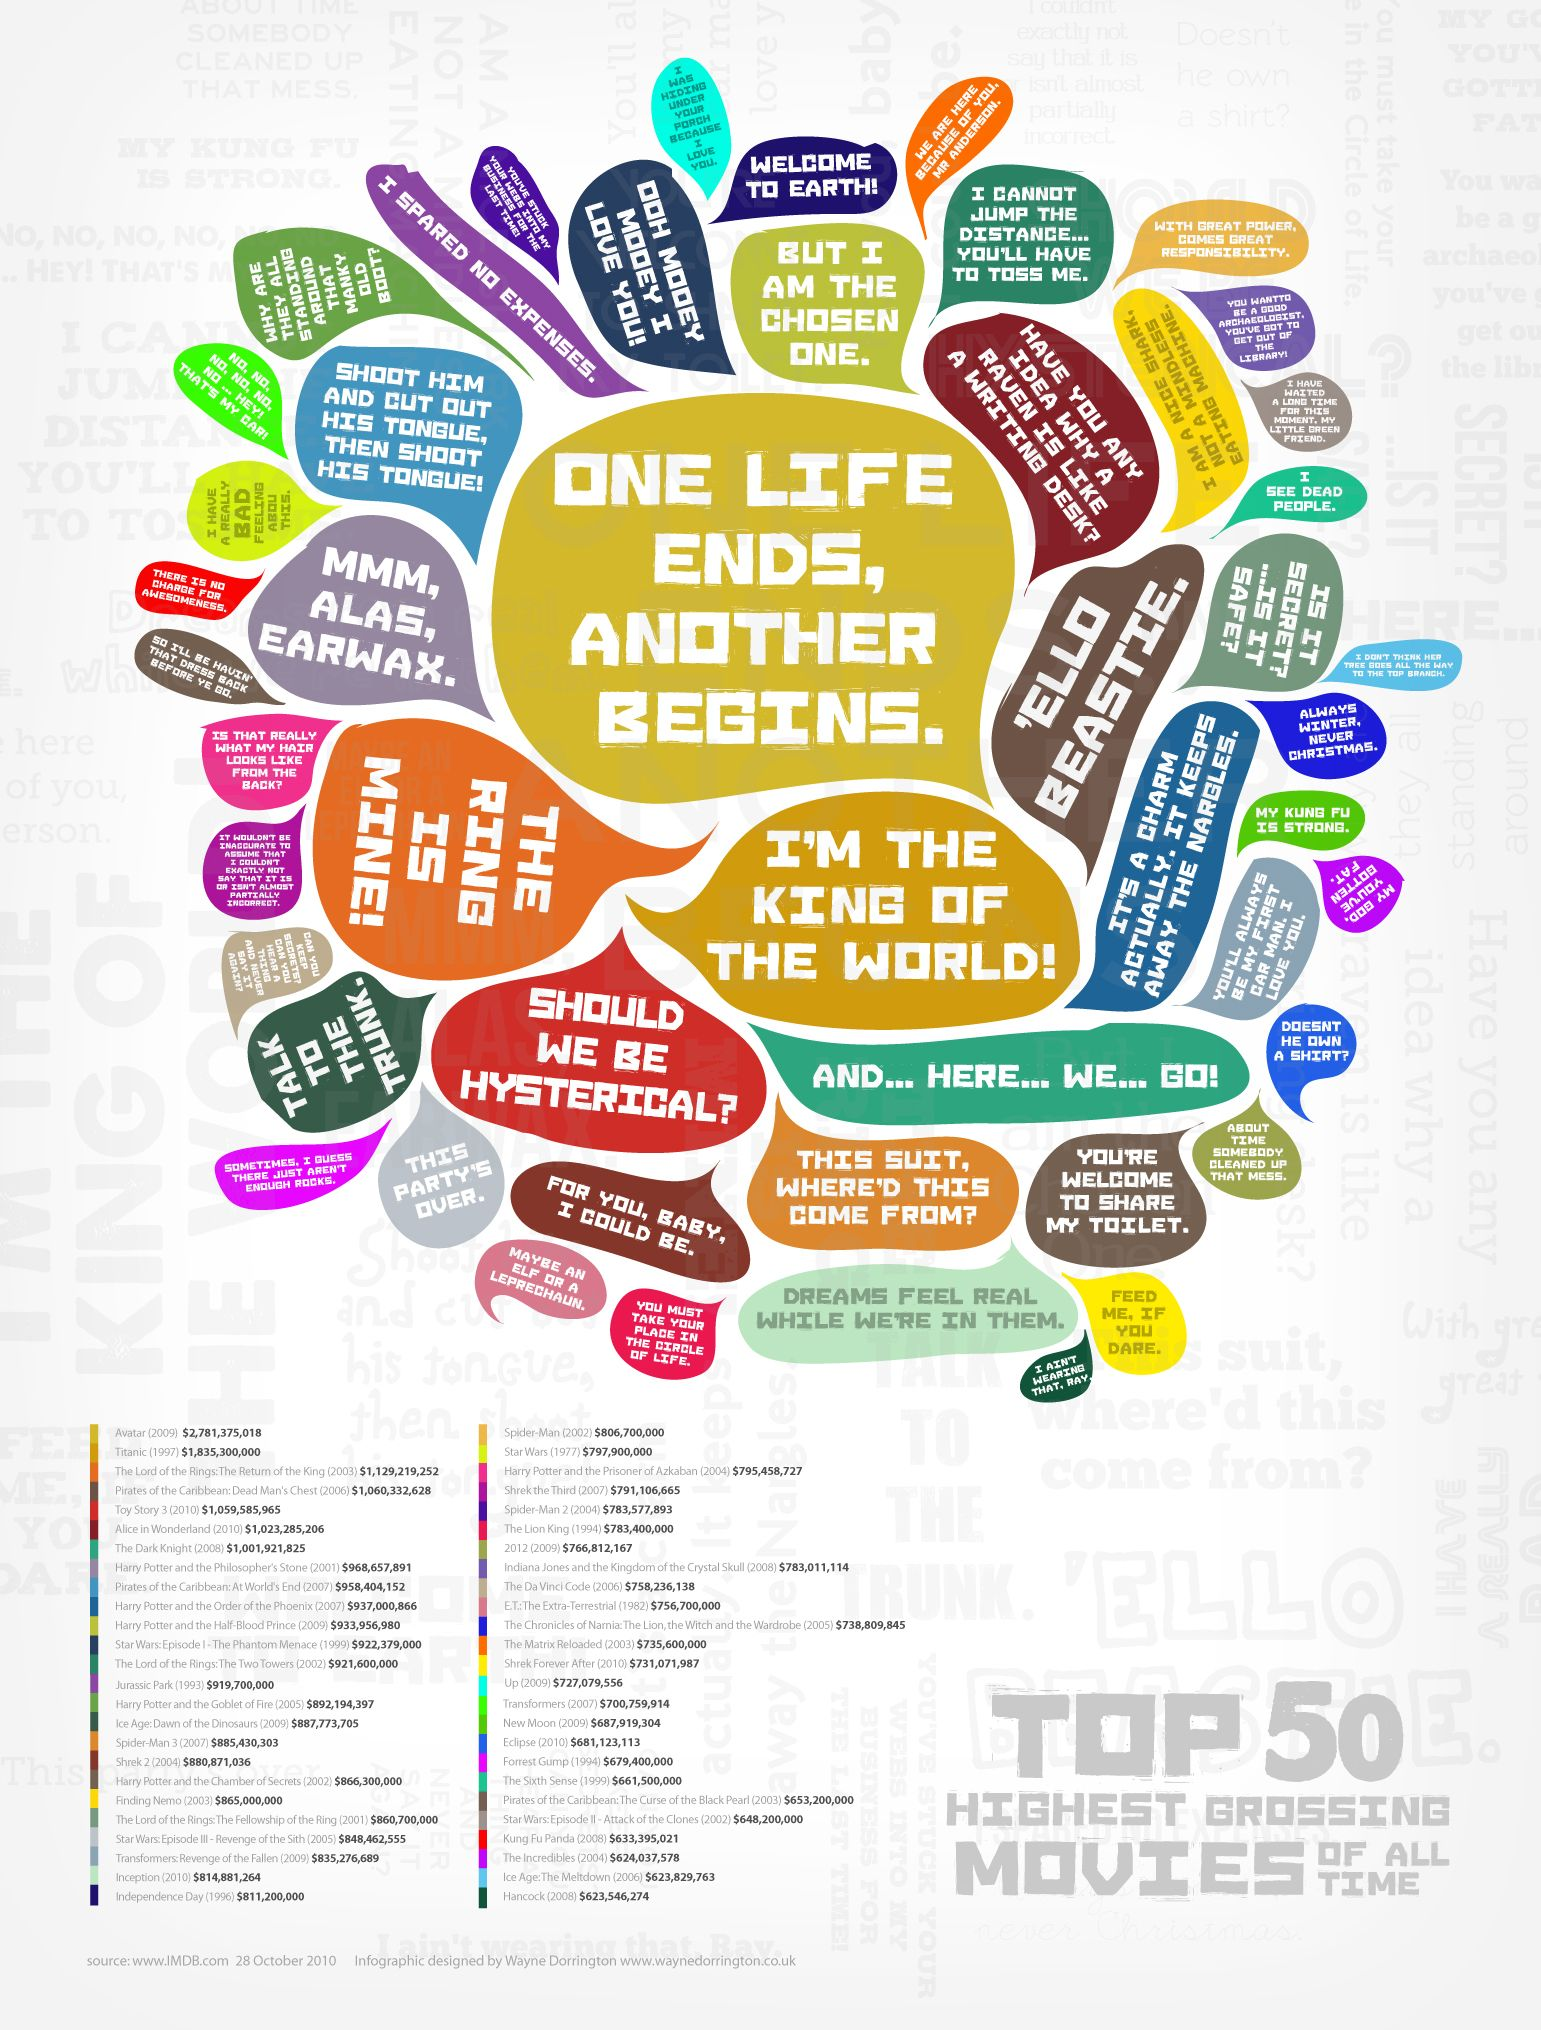 The top 50 highest grossing movies of all time illustrated in quotes, by Wayne Dorrington.